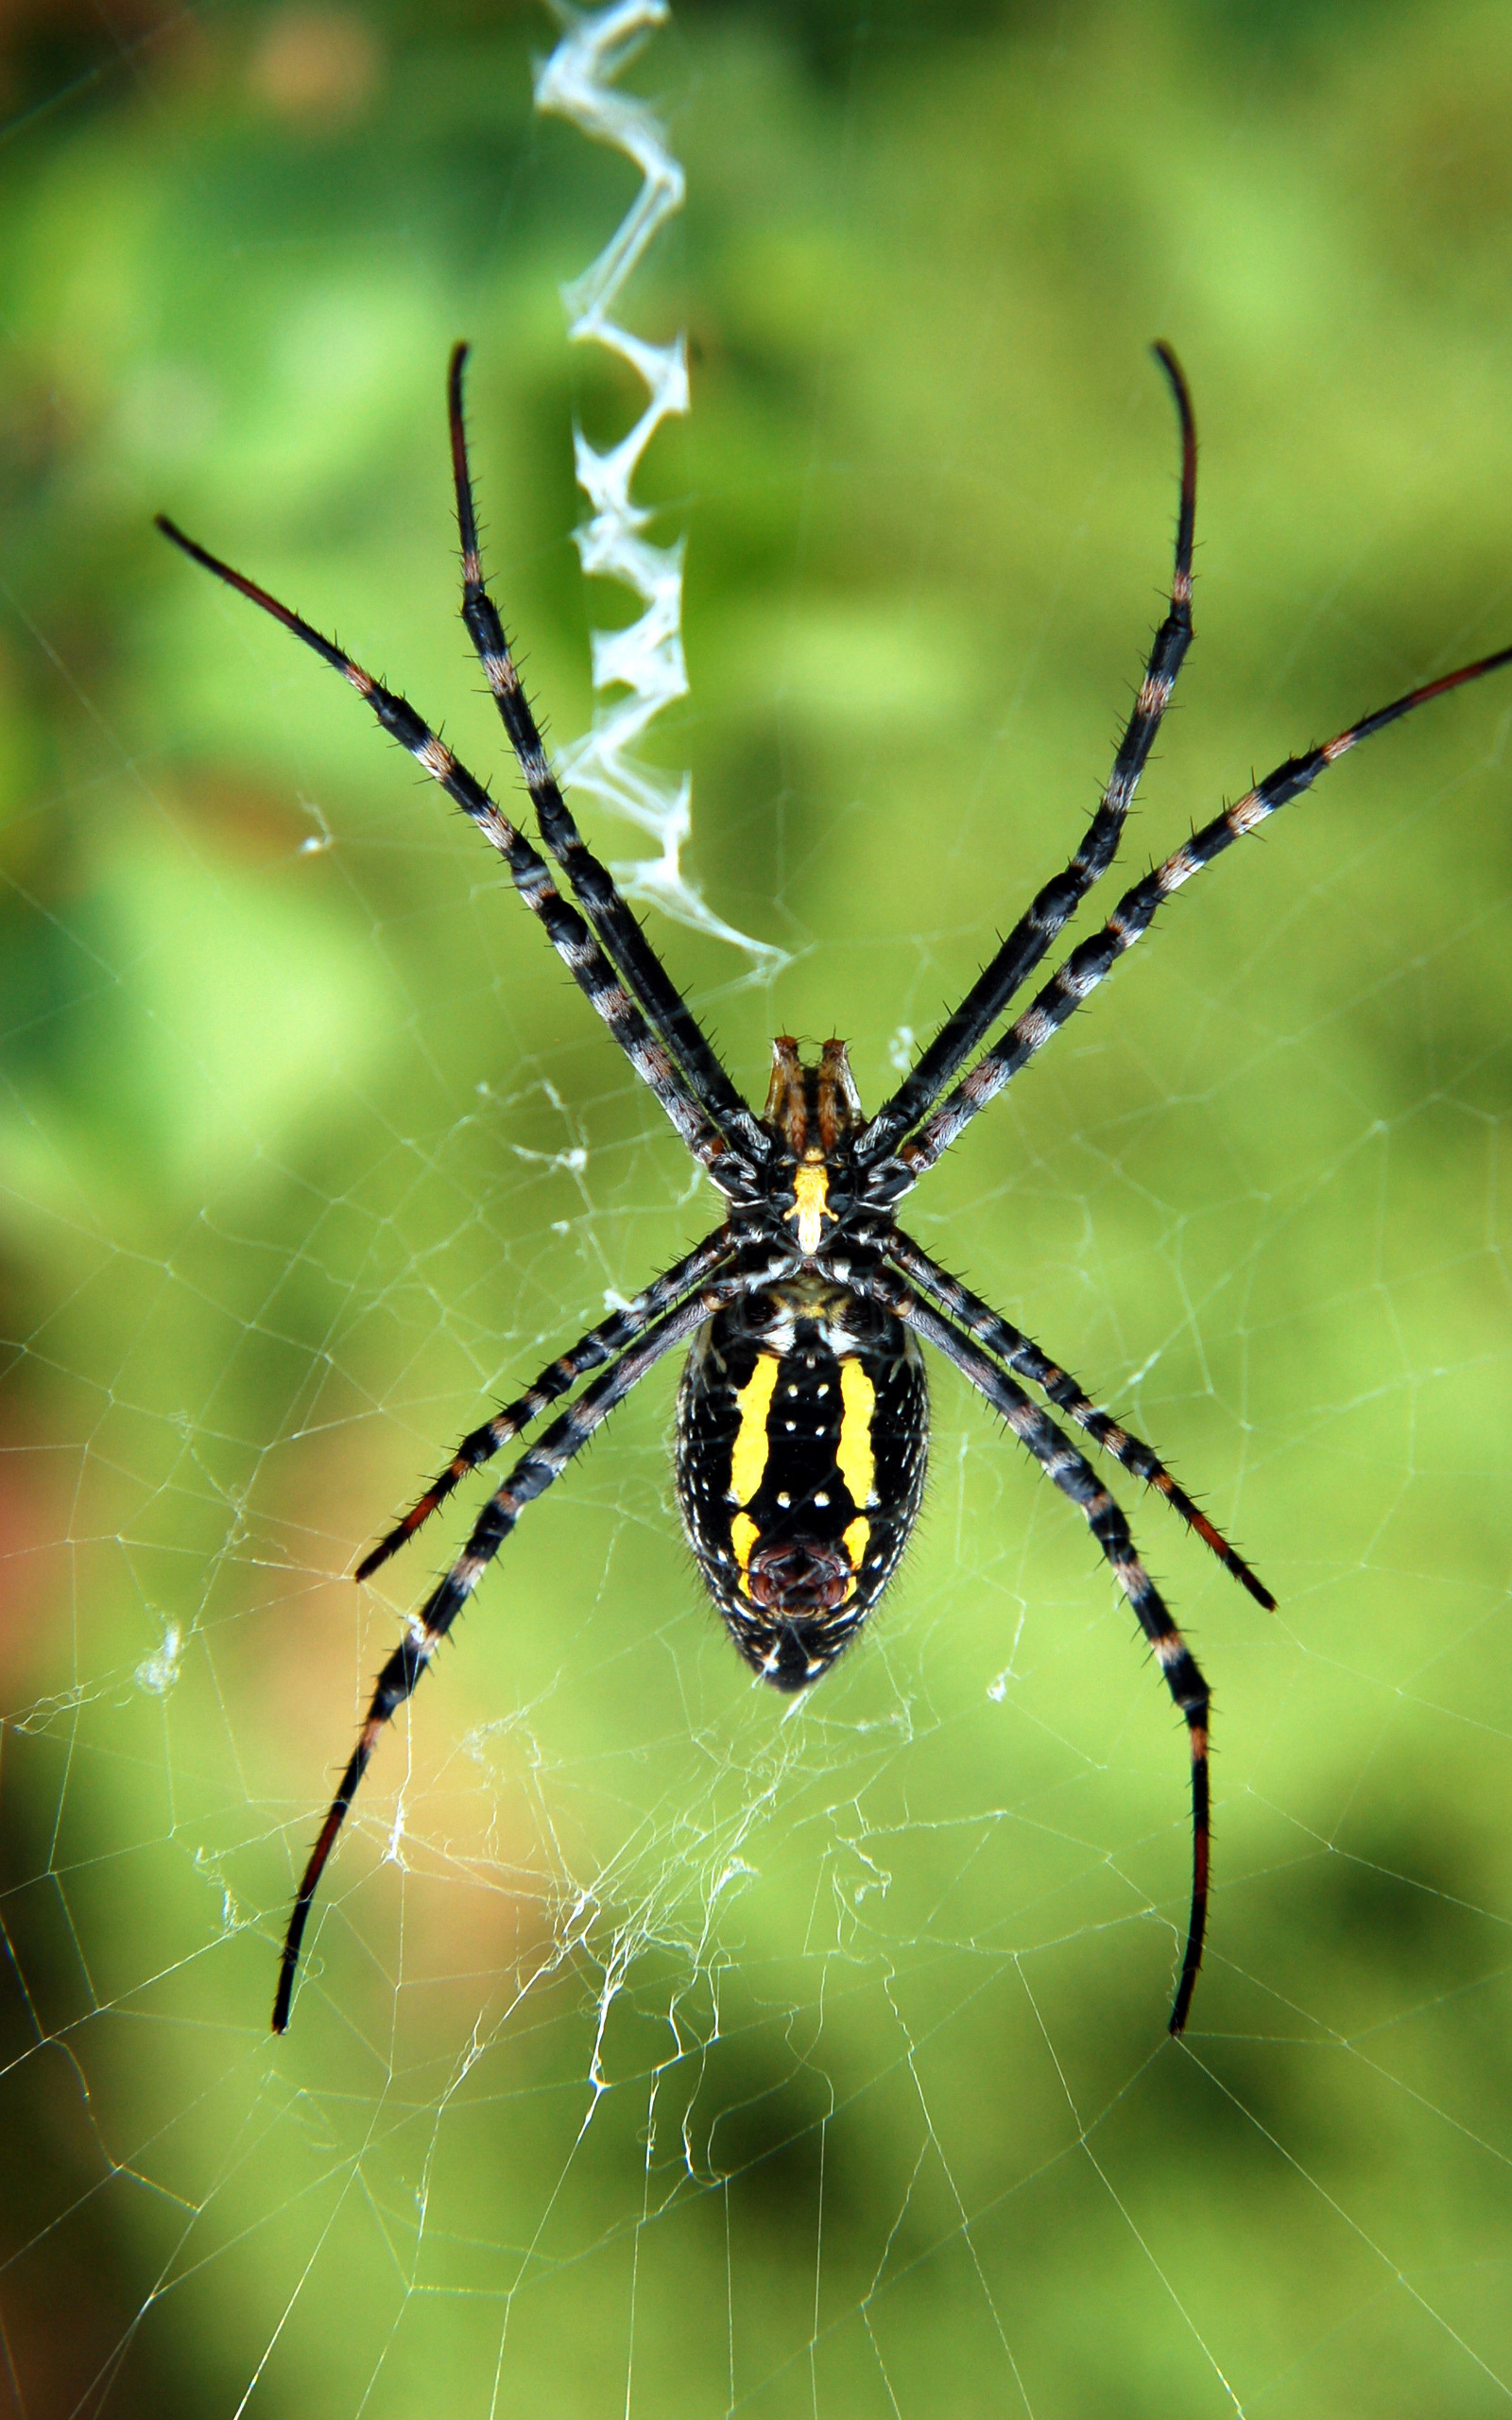 Animals insects spiders arachnids HD Wallpaper